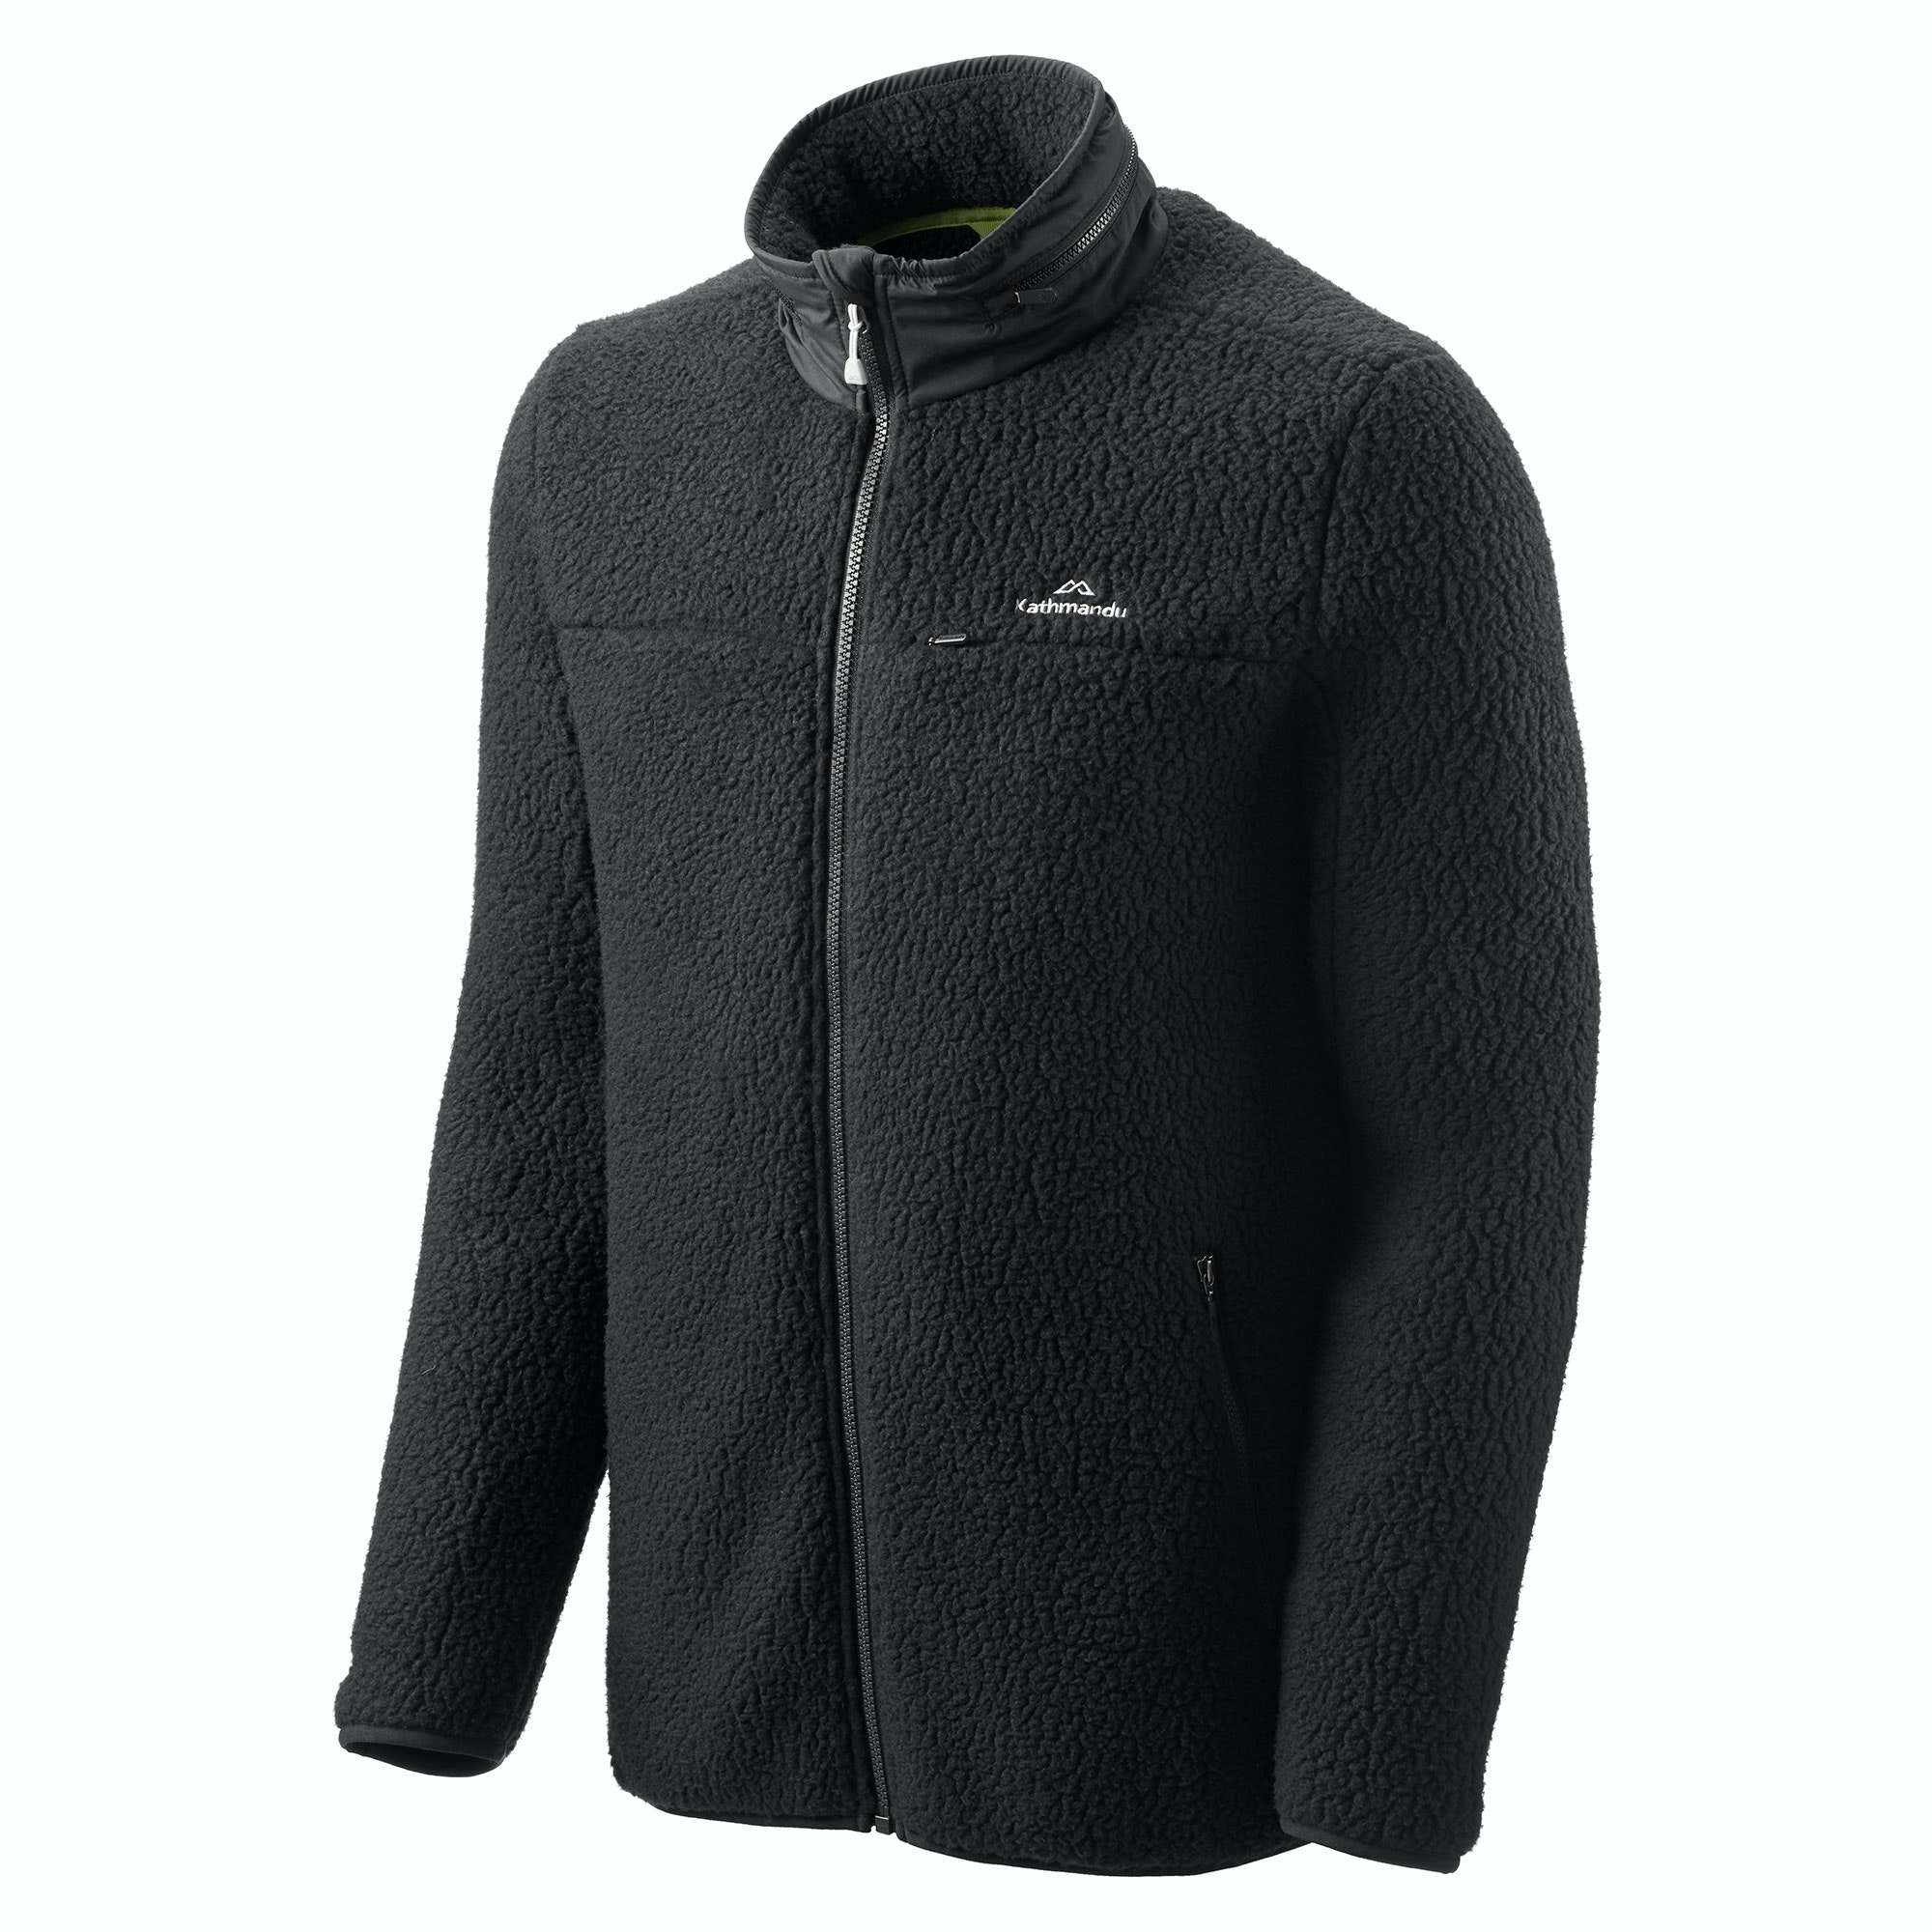 NEW-Kathmandu-Baffin-Island-Men-039-s-Full-Zip-Hooded-Warm-Outdoor-Fleece-Jacket thumbnail 5